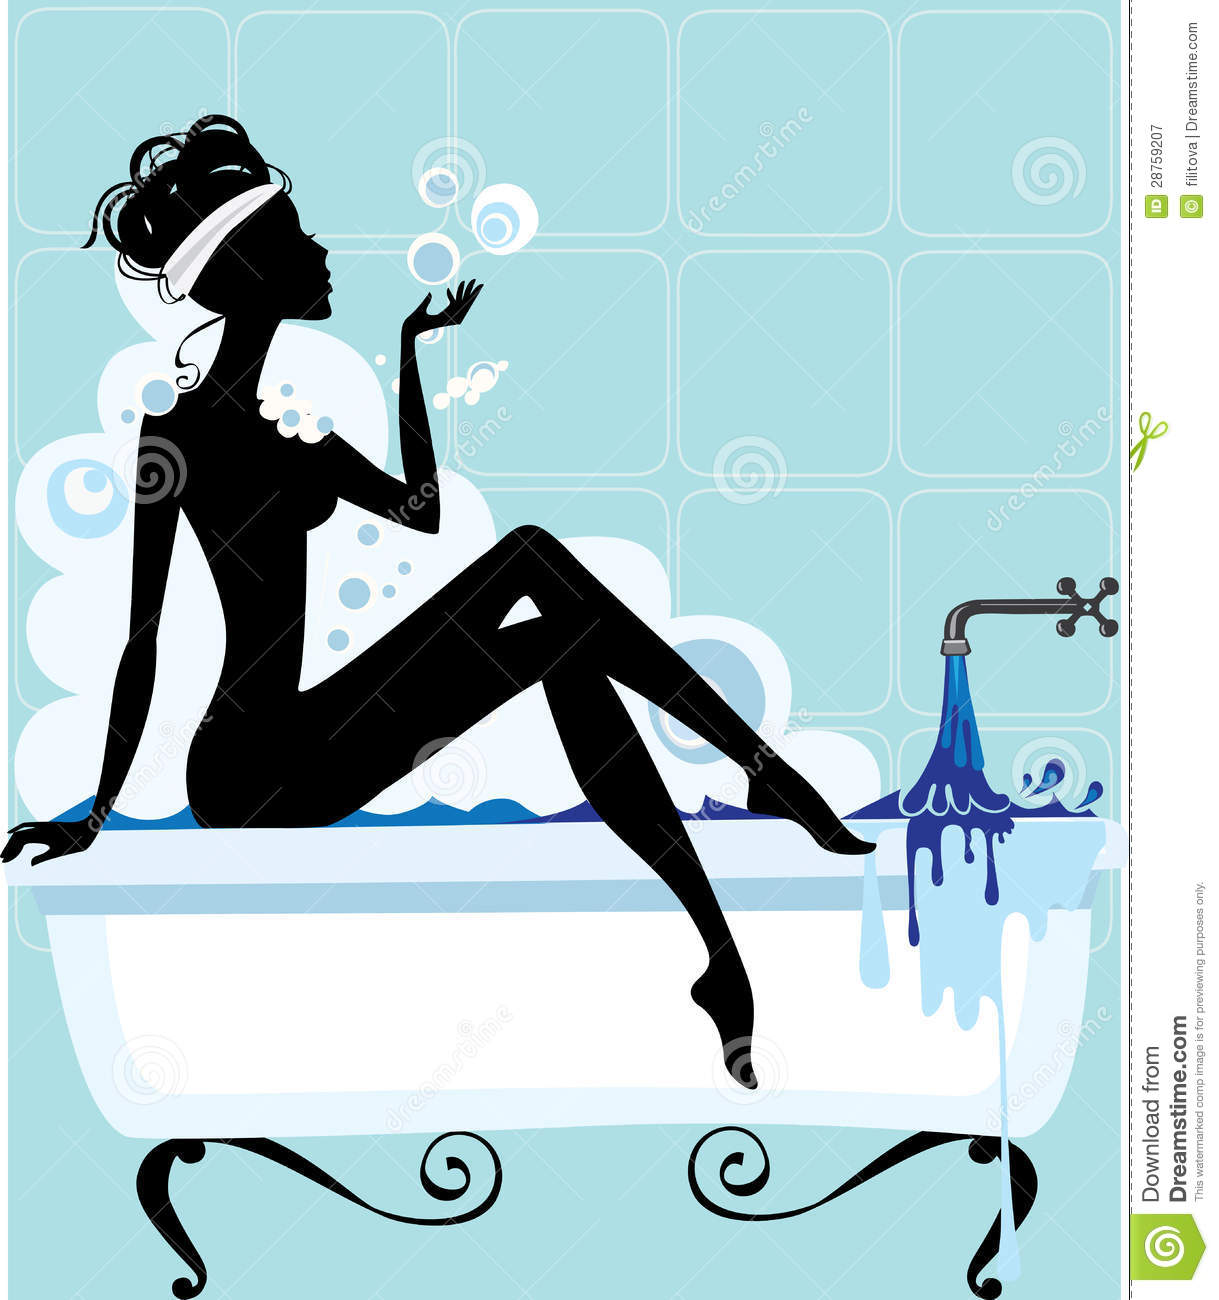 silhouette of a woman in a bathtub royalty free stock photography image 28759207. Black Bedroom Furniture Sets. Home Design Ideas